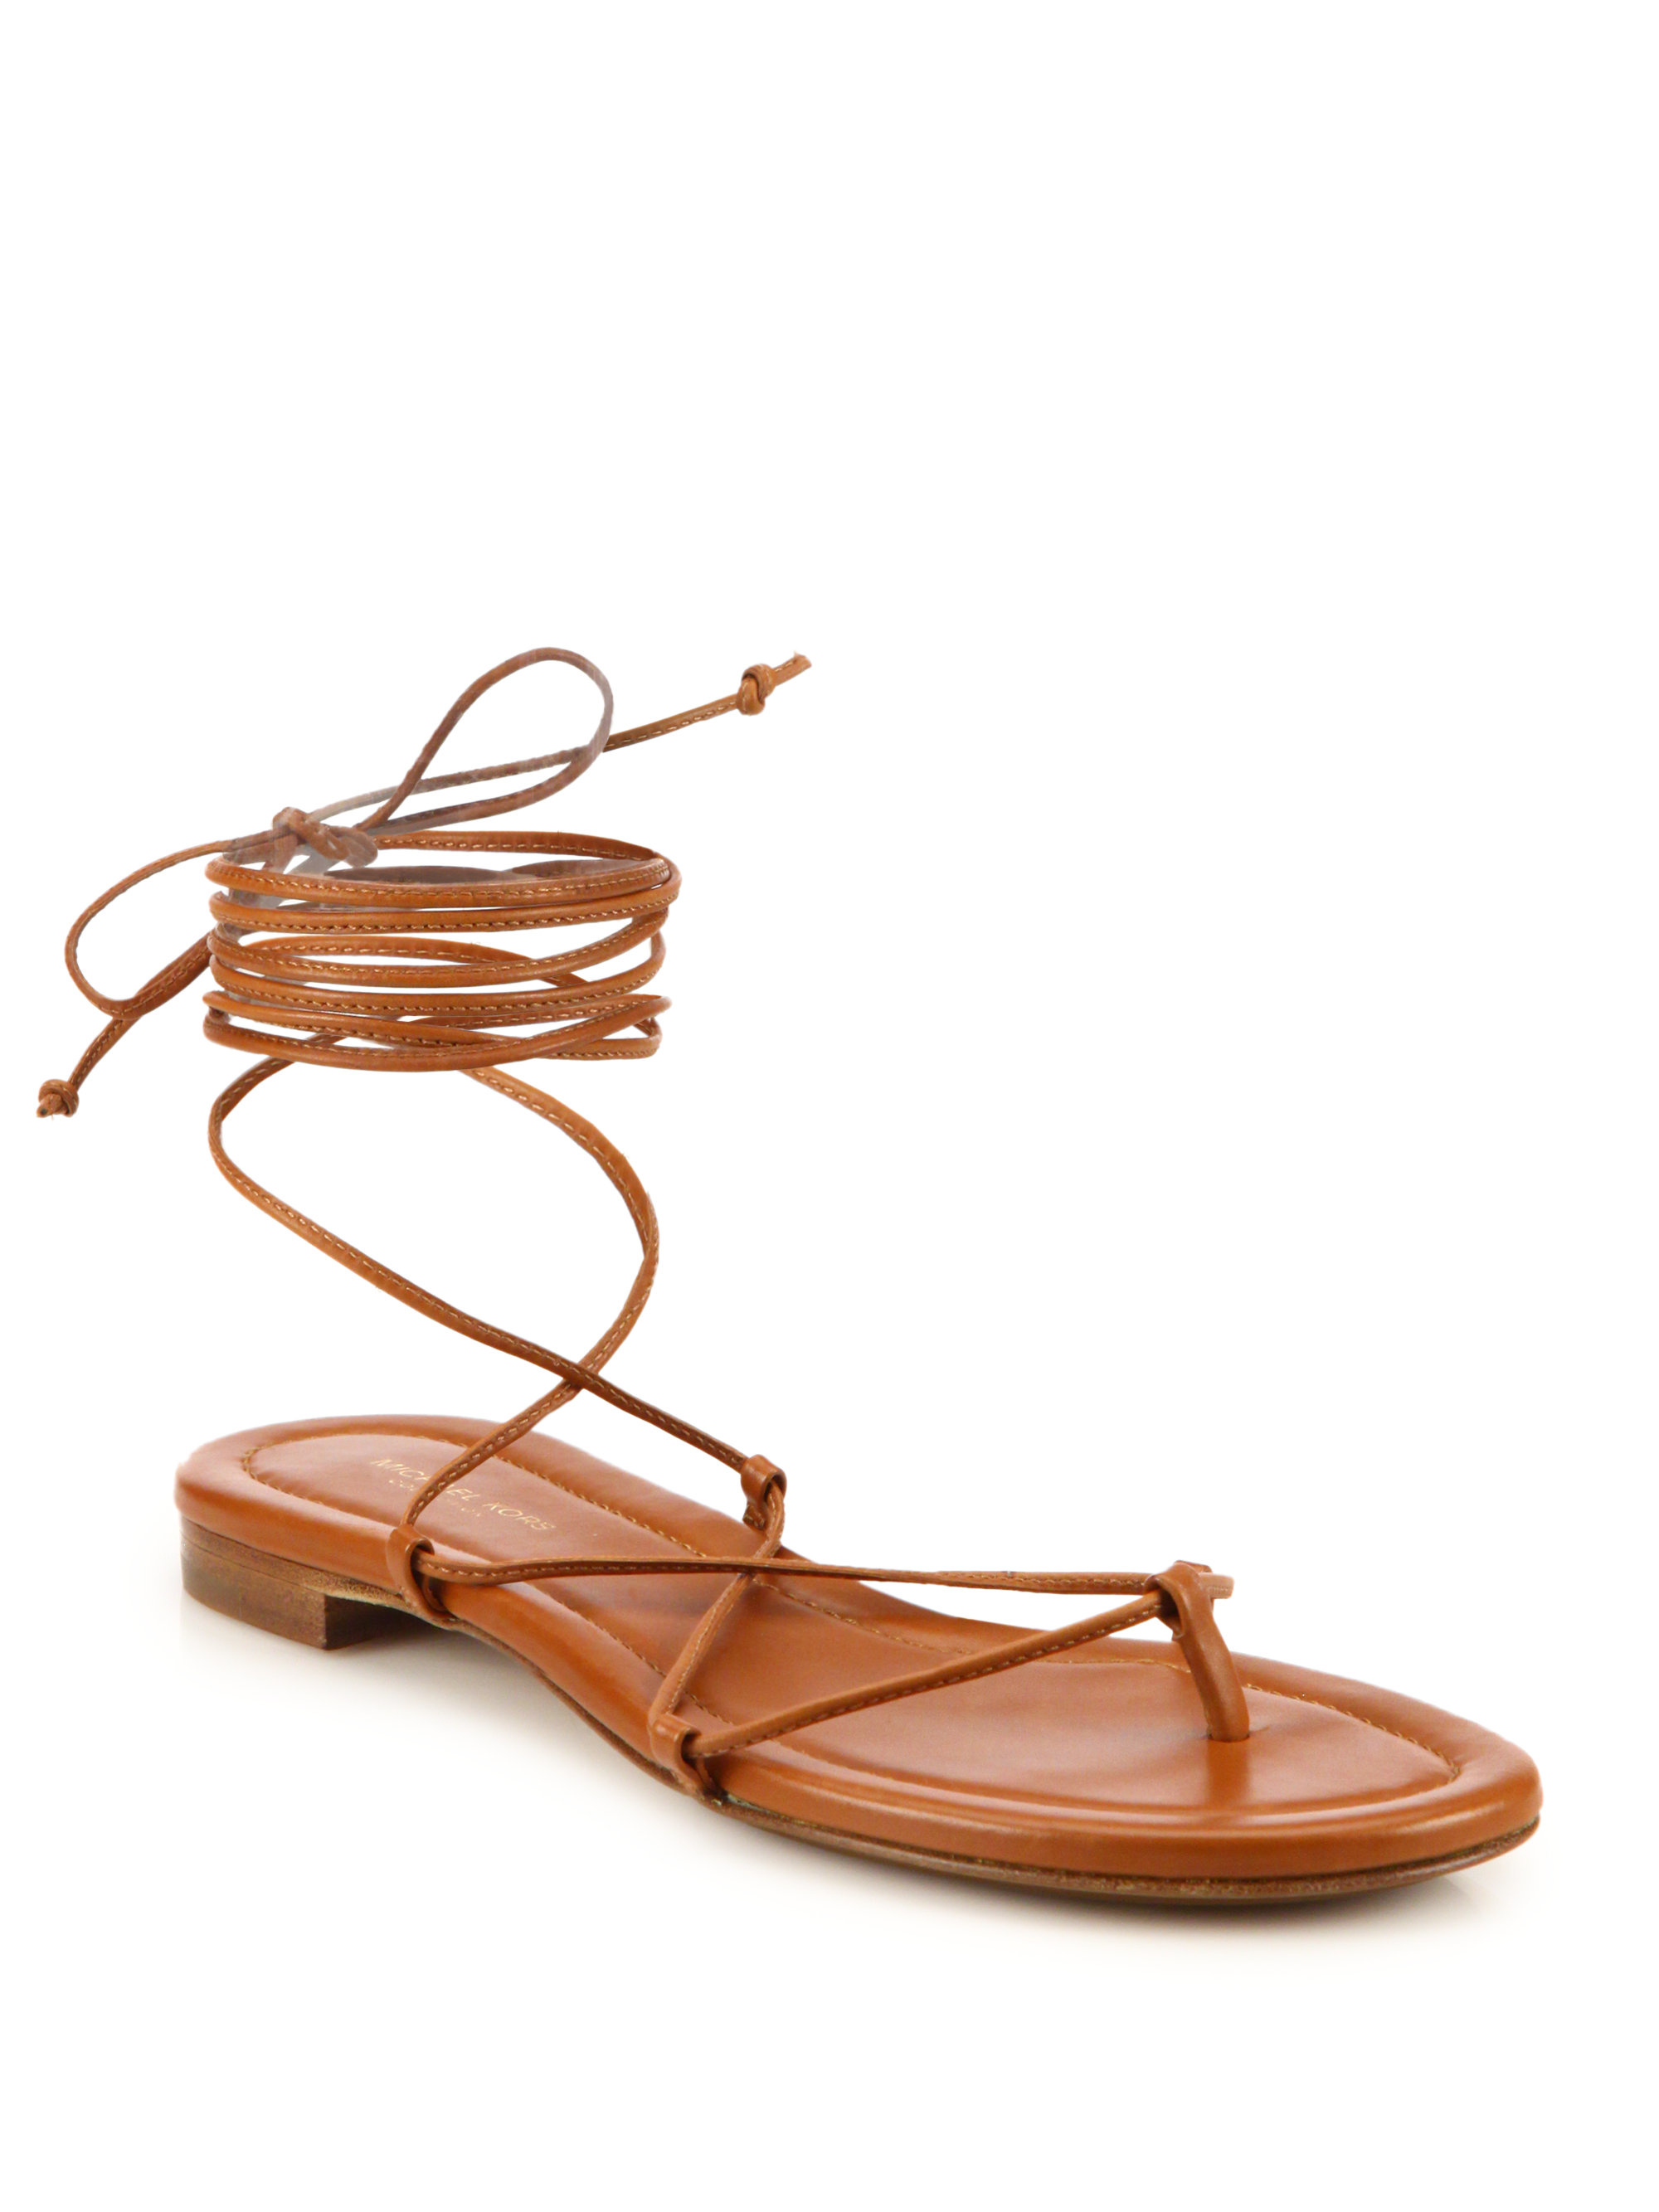 Super Lyst - Michael Kors Bradshaw Lace-up Leather Sandals in Brown VJ28